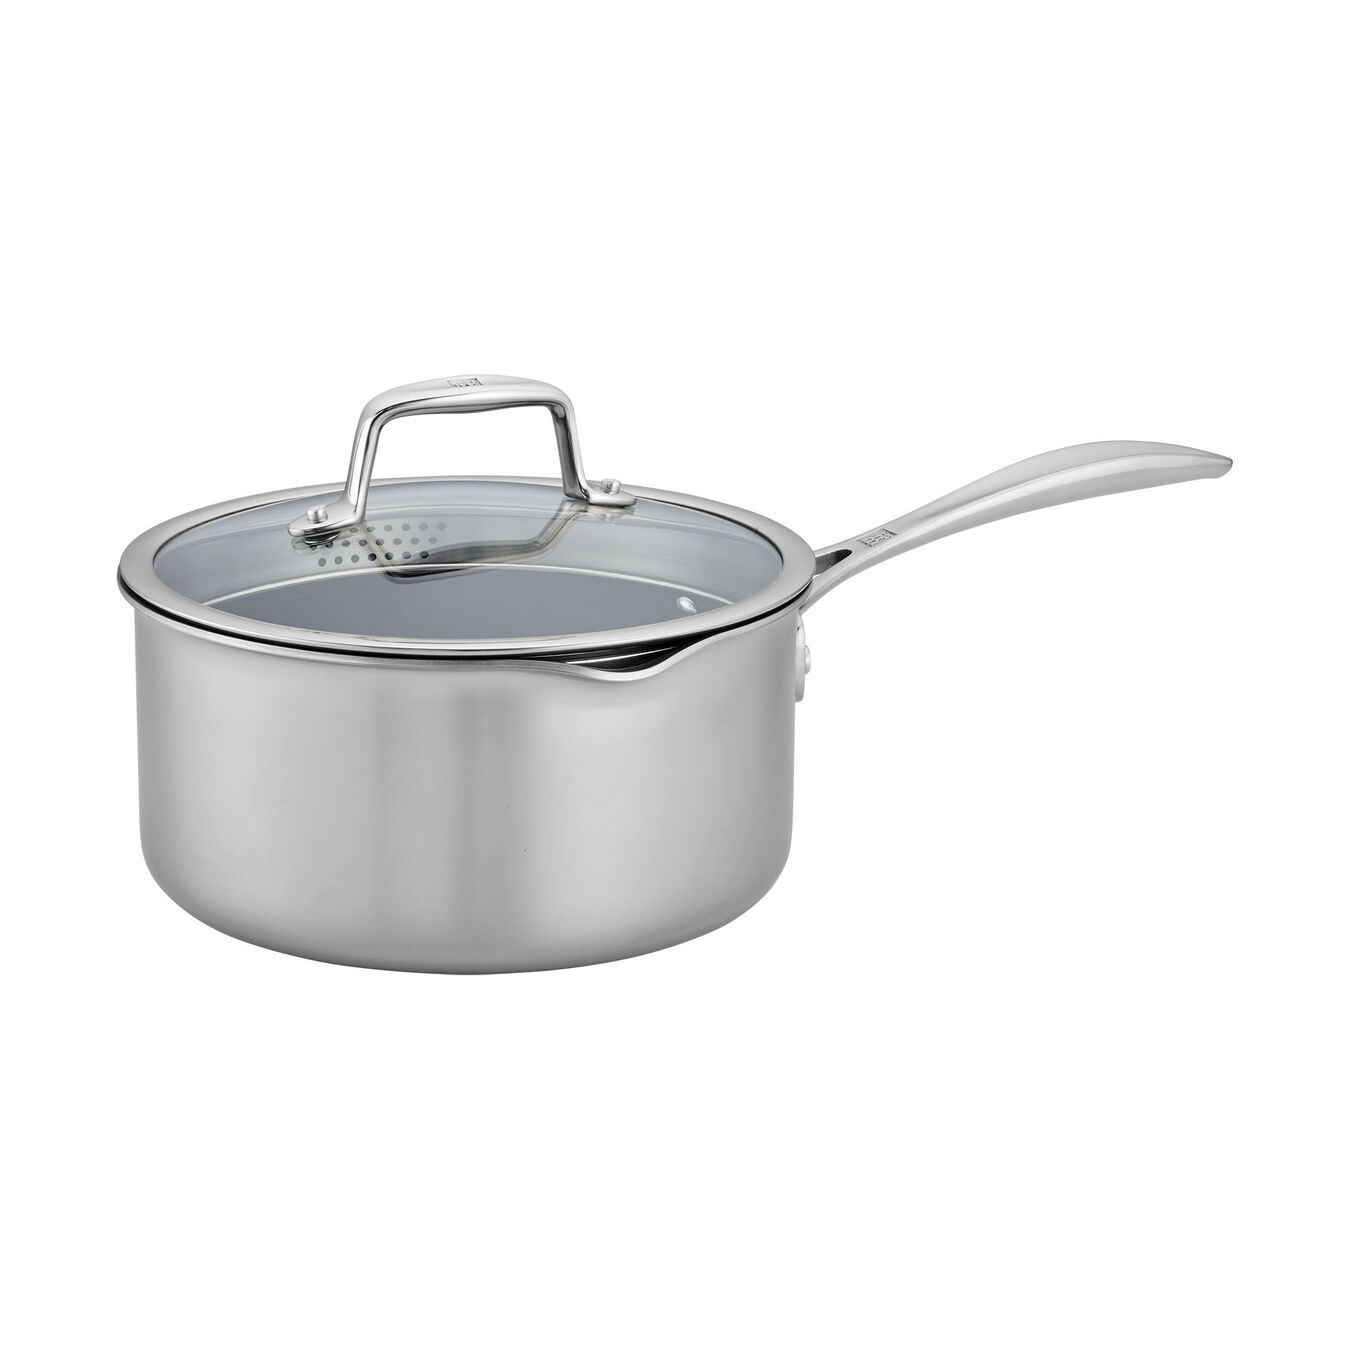 3 qt, 18/10 Stainless Steel, 18/10 Stainless Steel, Non-stick, Sauce pan,,large 1